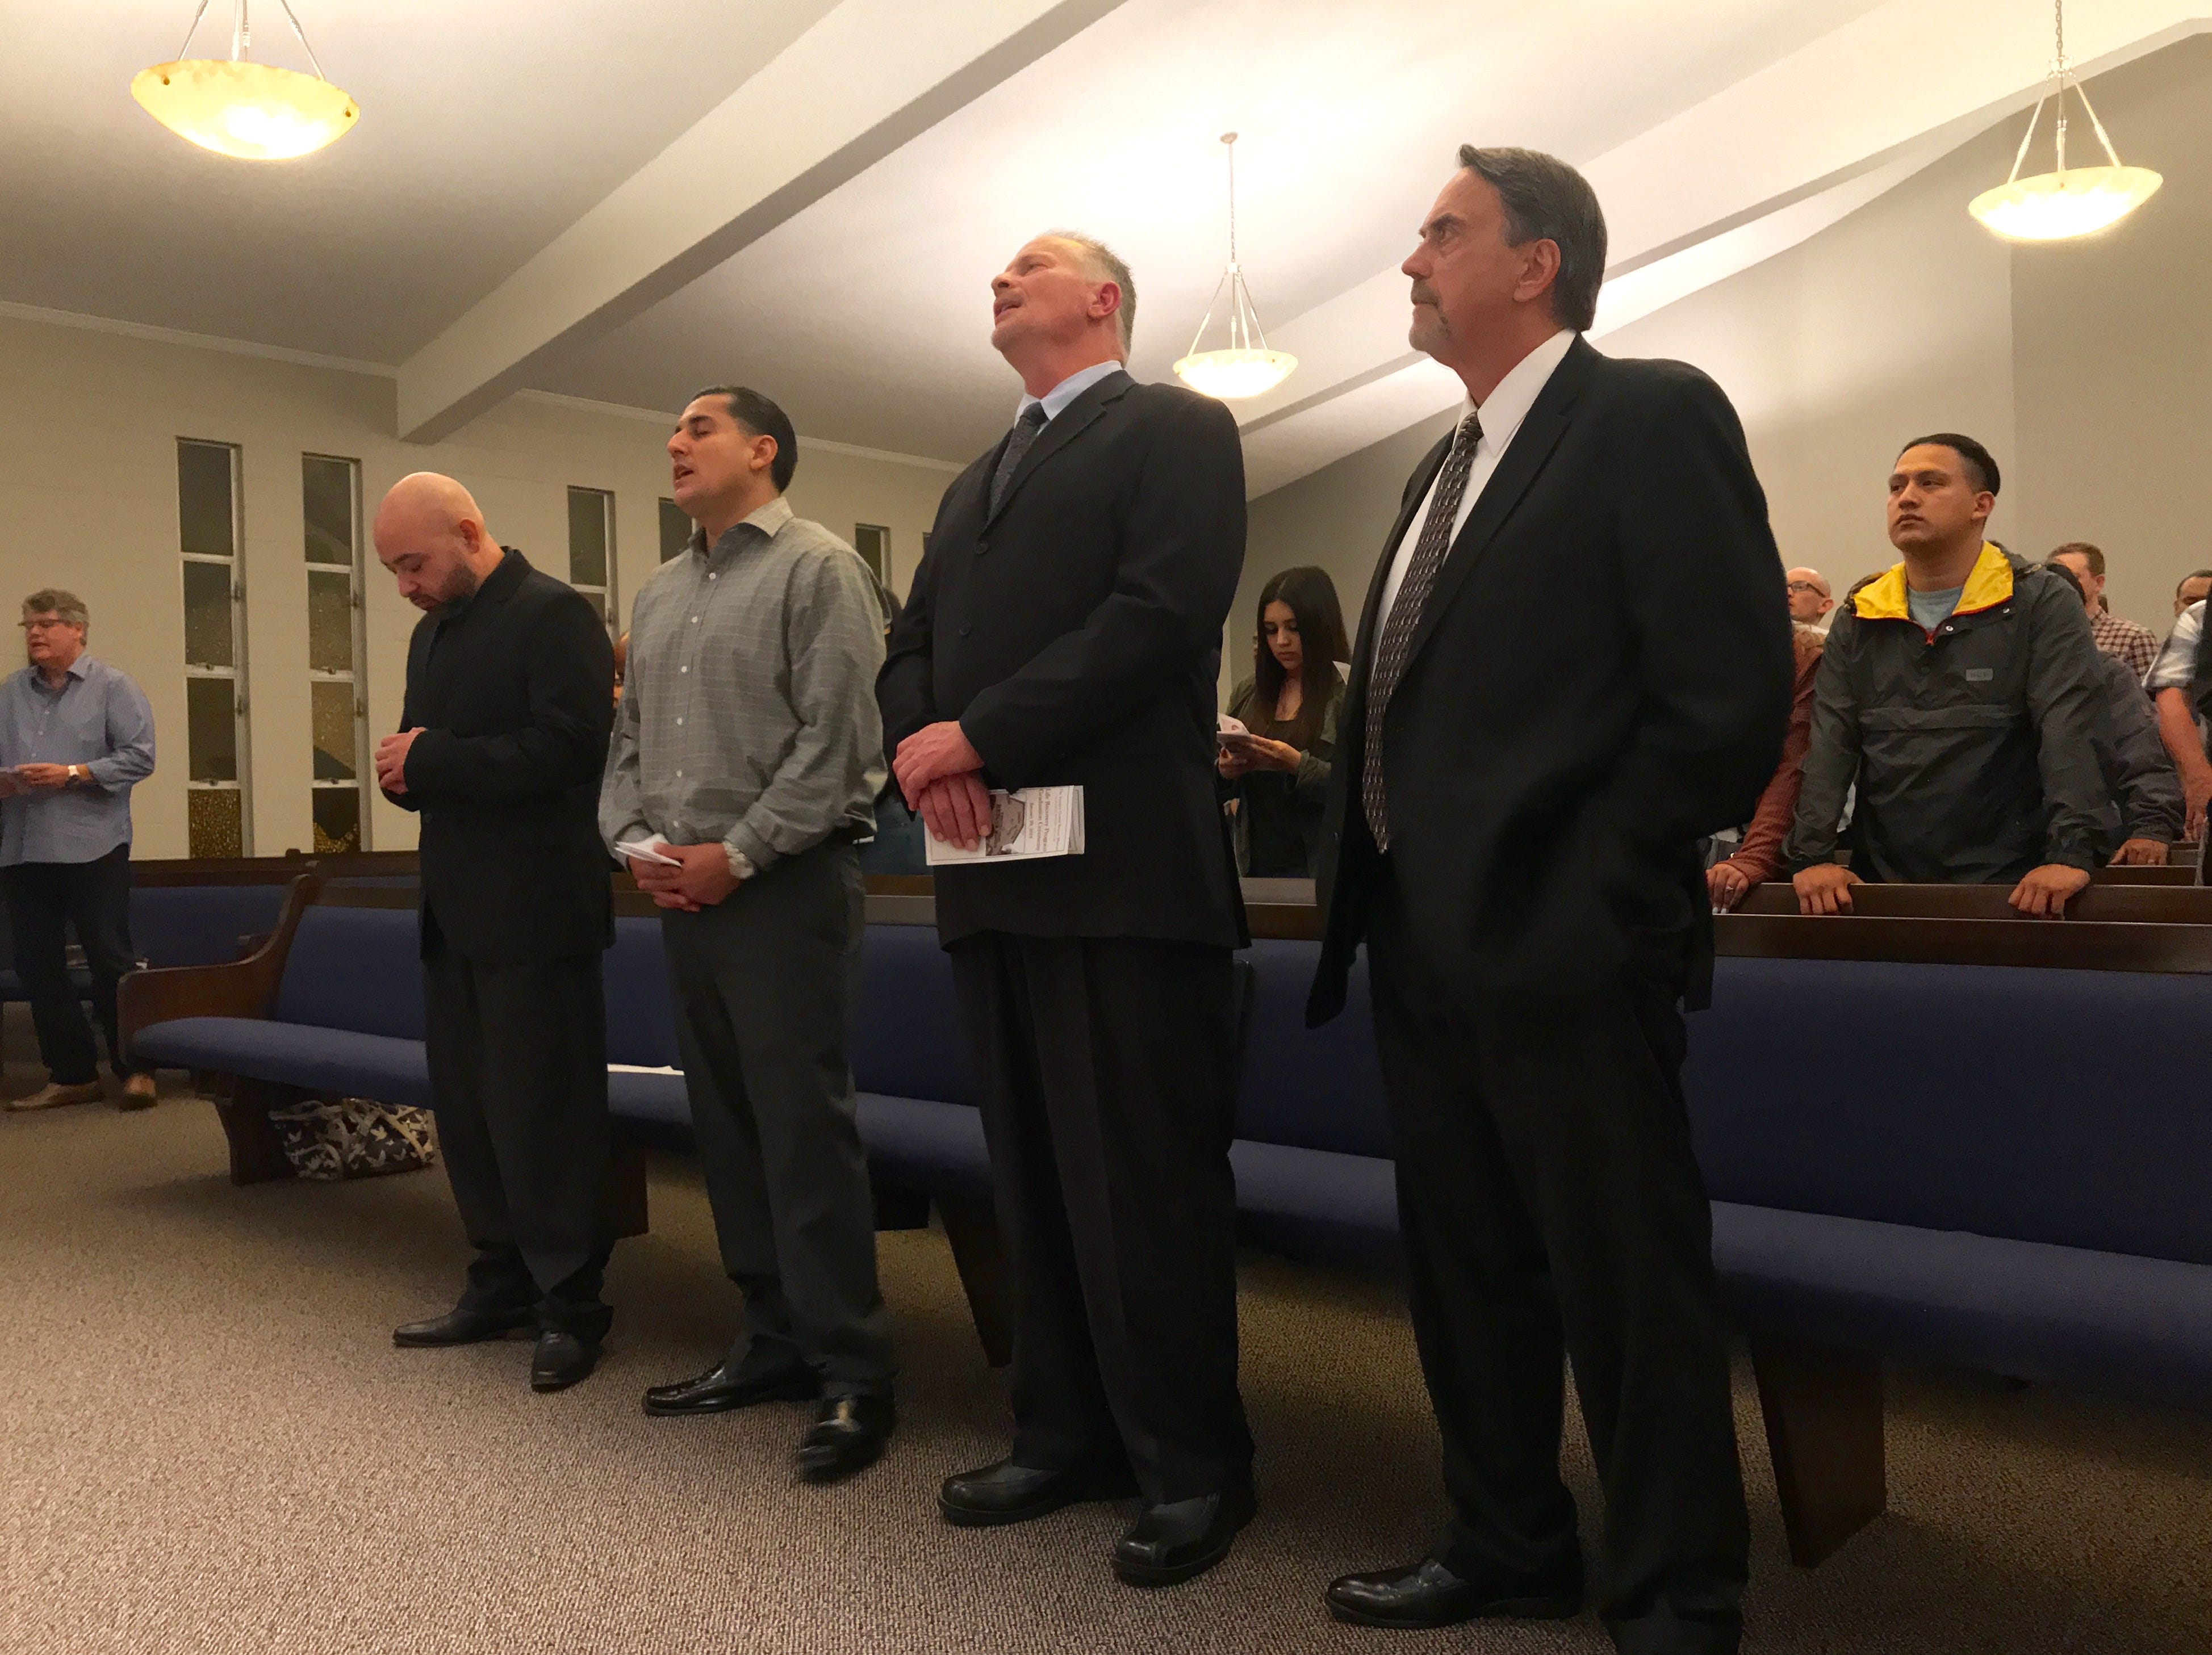 From left to right, Joe Hernandez, JR Gutierrez, Anthony Serres and Casey Finn sing a hymn during their graduation from the 10-month Ventura County Rescue Mission program.